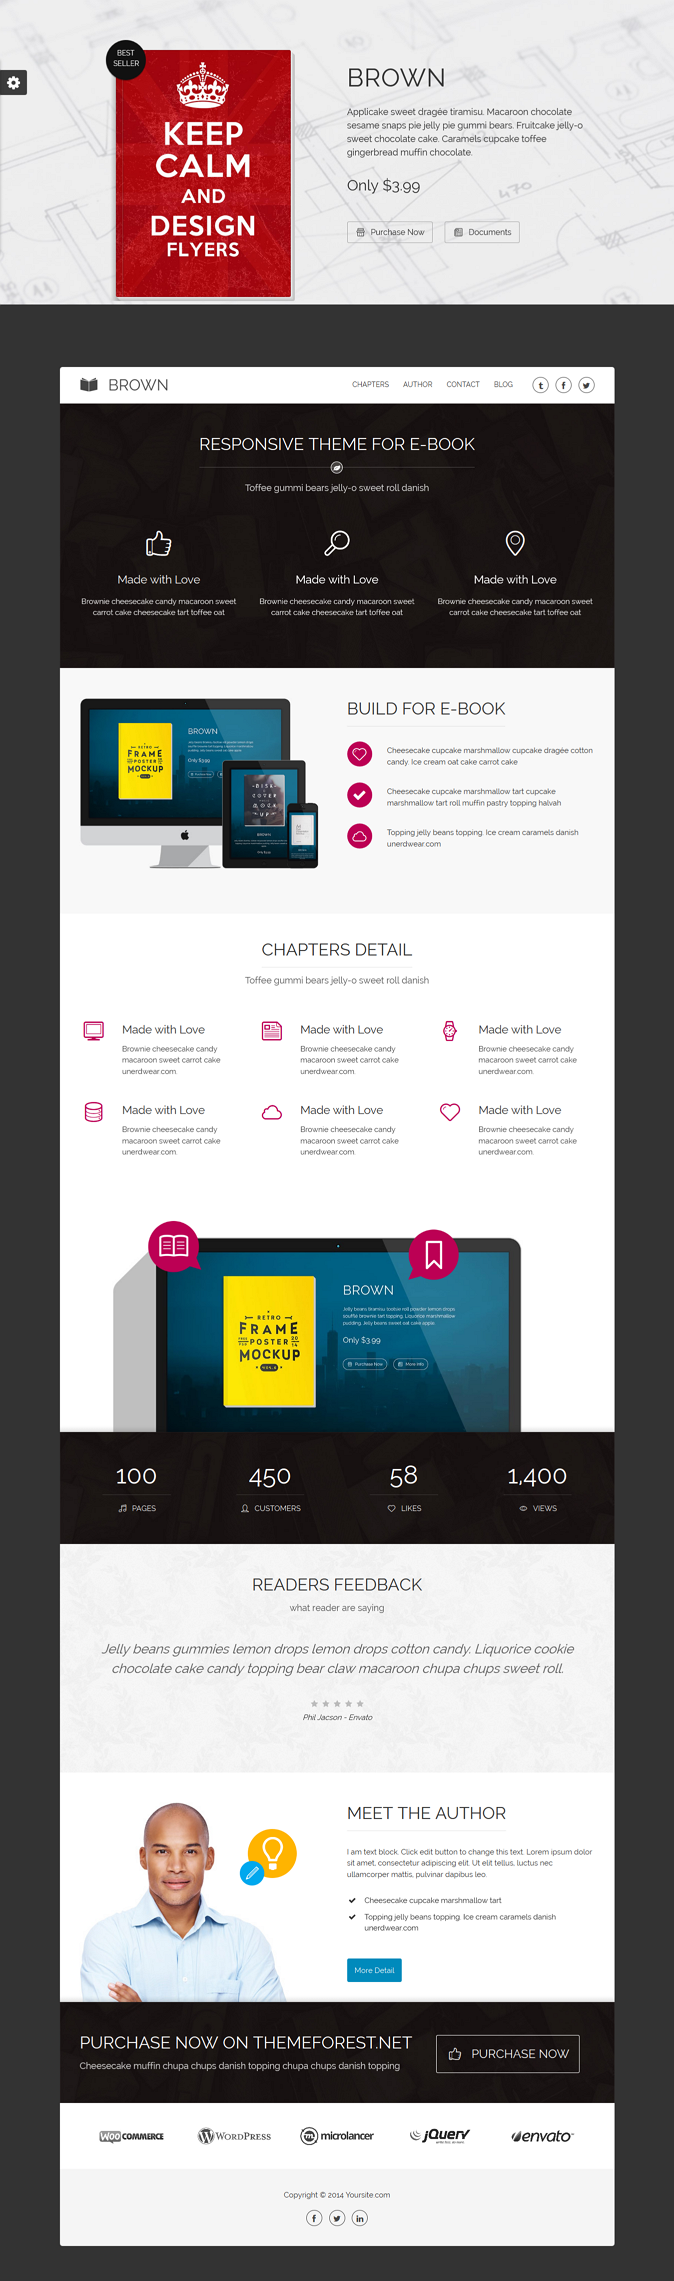 Brown is responsive WordPress theme designed for e-book authors and marketers with everything yo ...